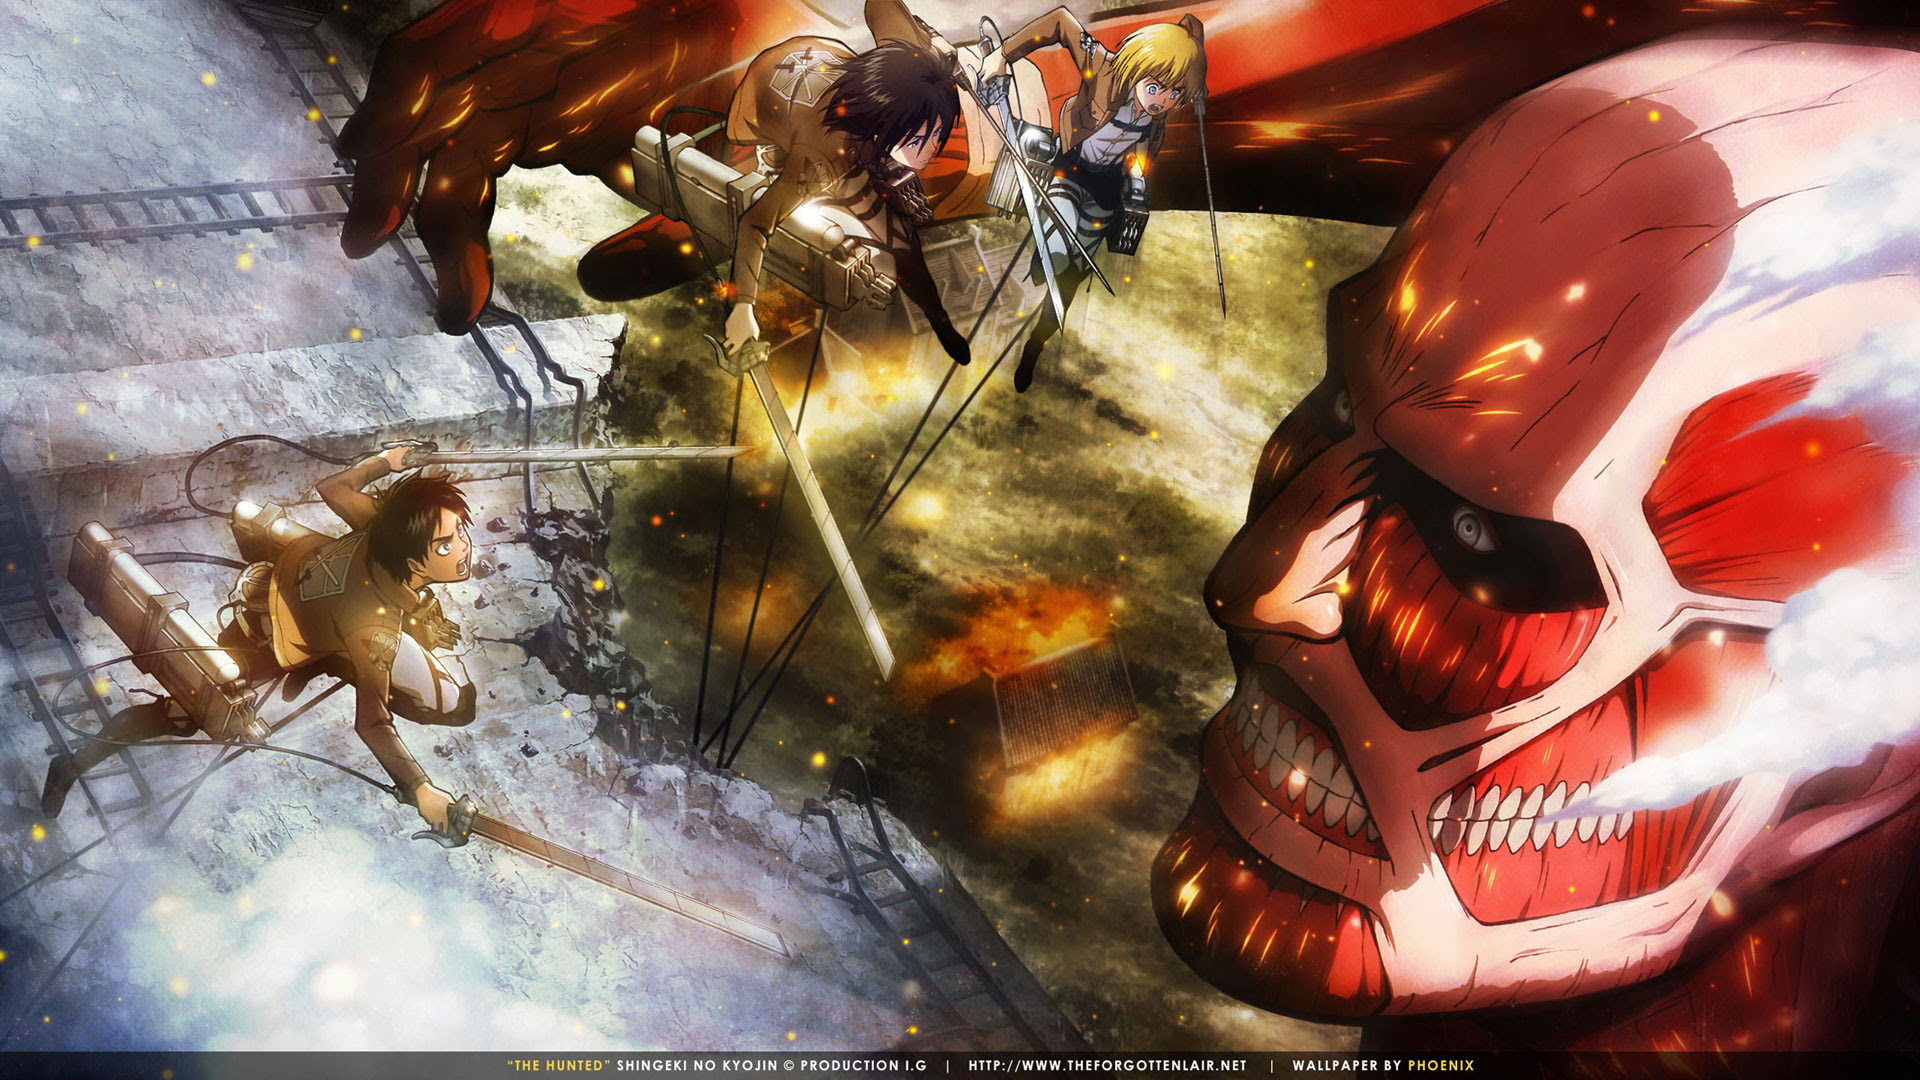 Shingeki No Kyojin Wallpaper And Scan Gallery Minitokyo